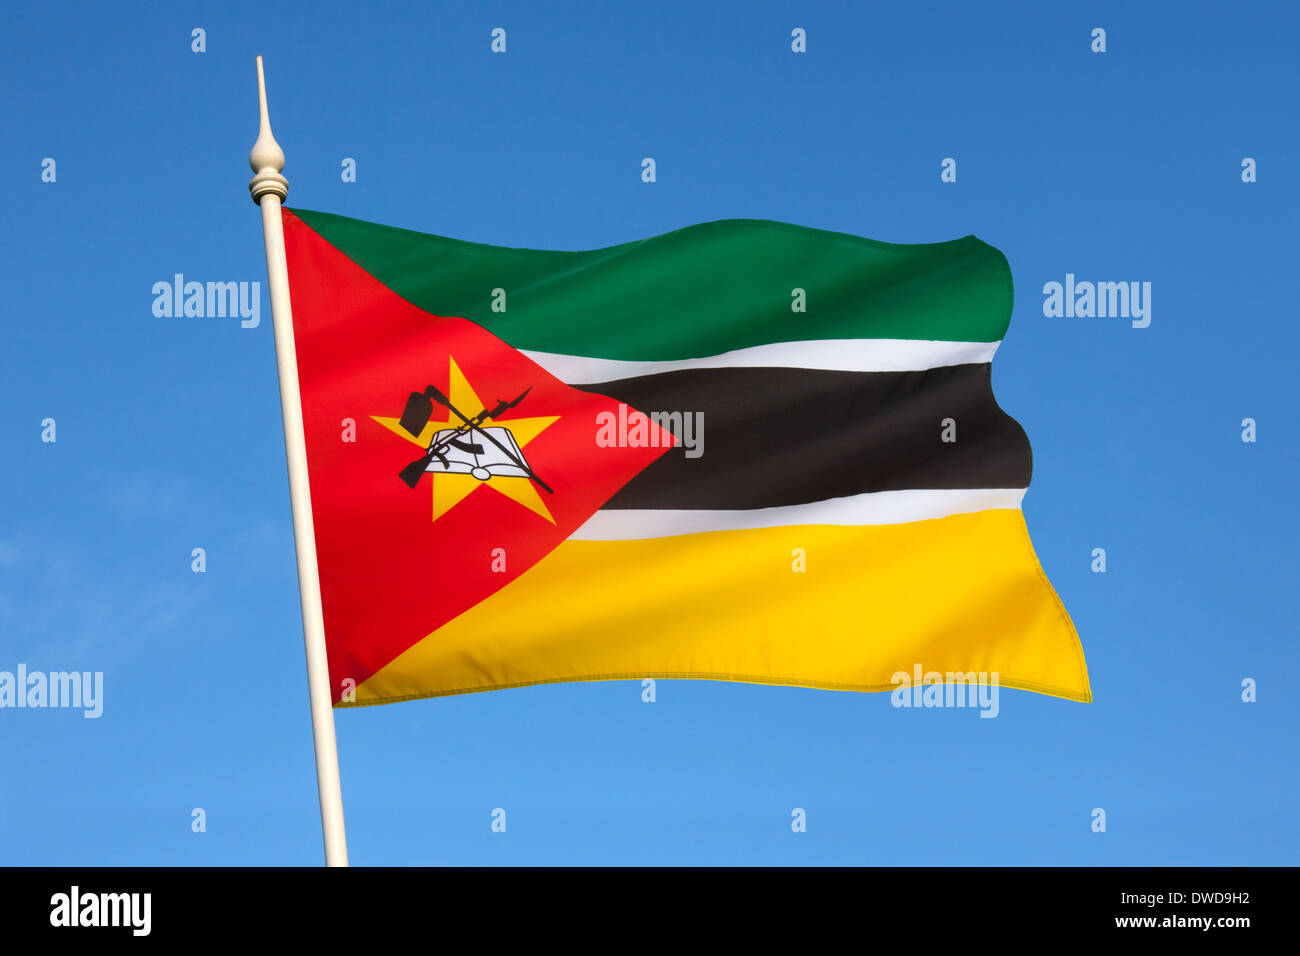 The flag of Mozambique - Stock Image